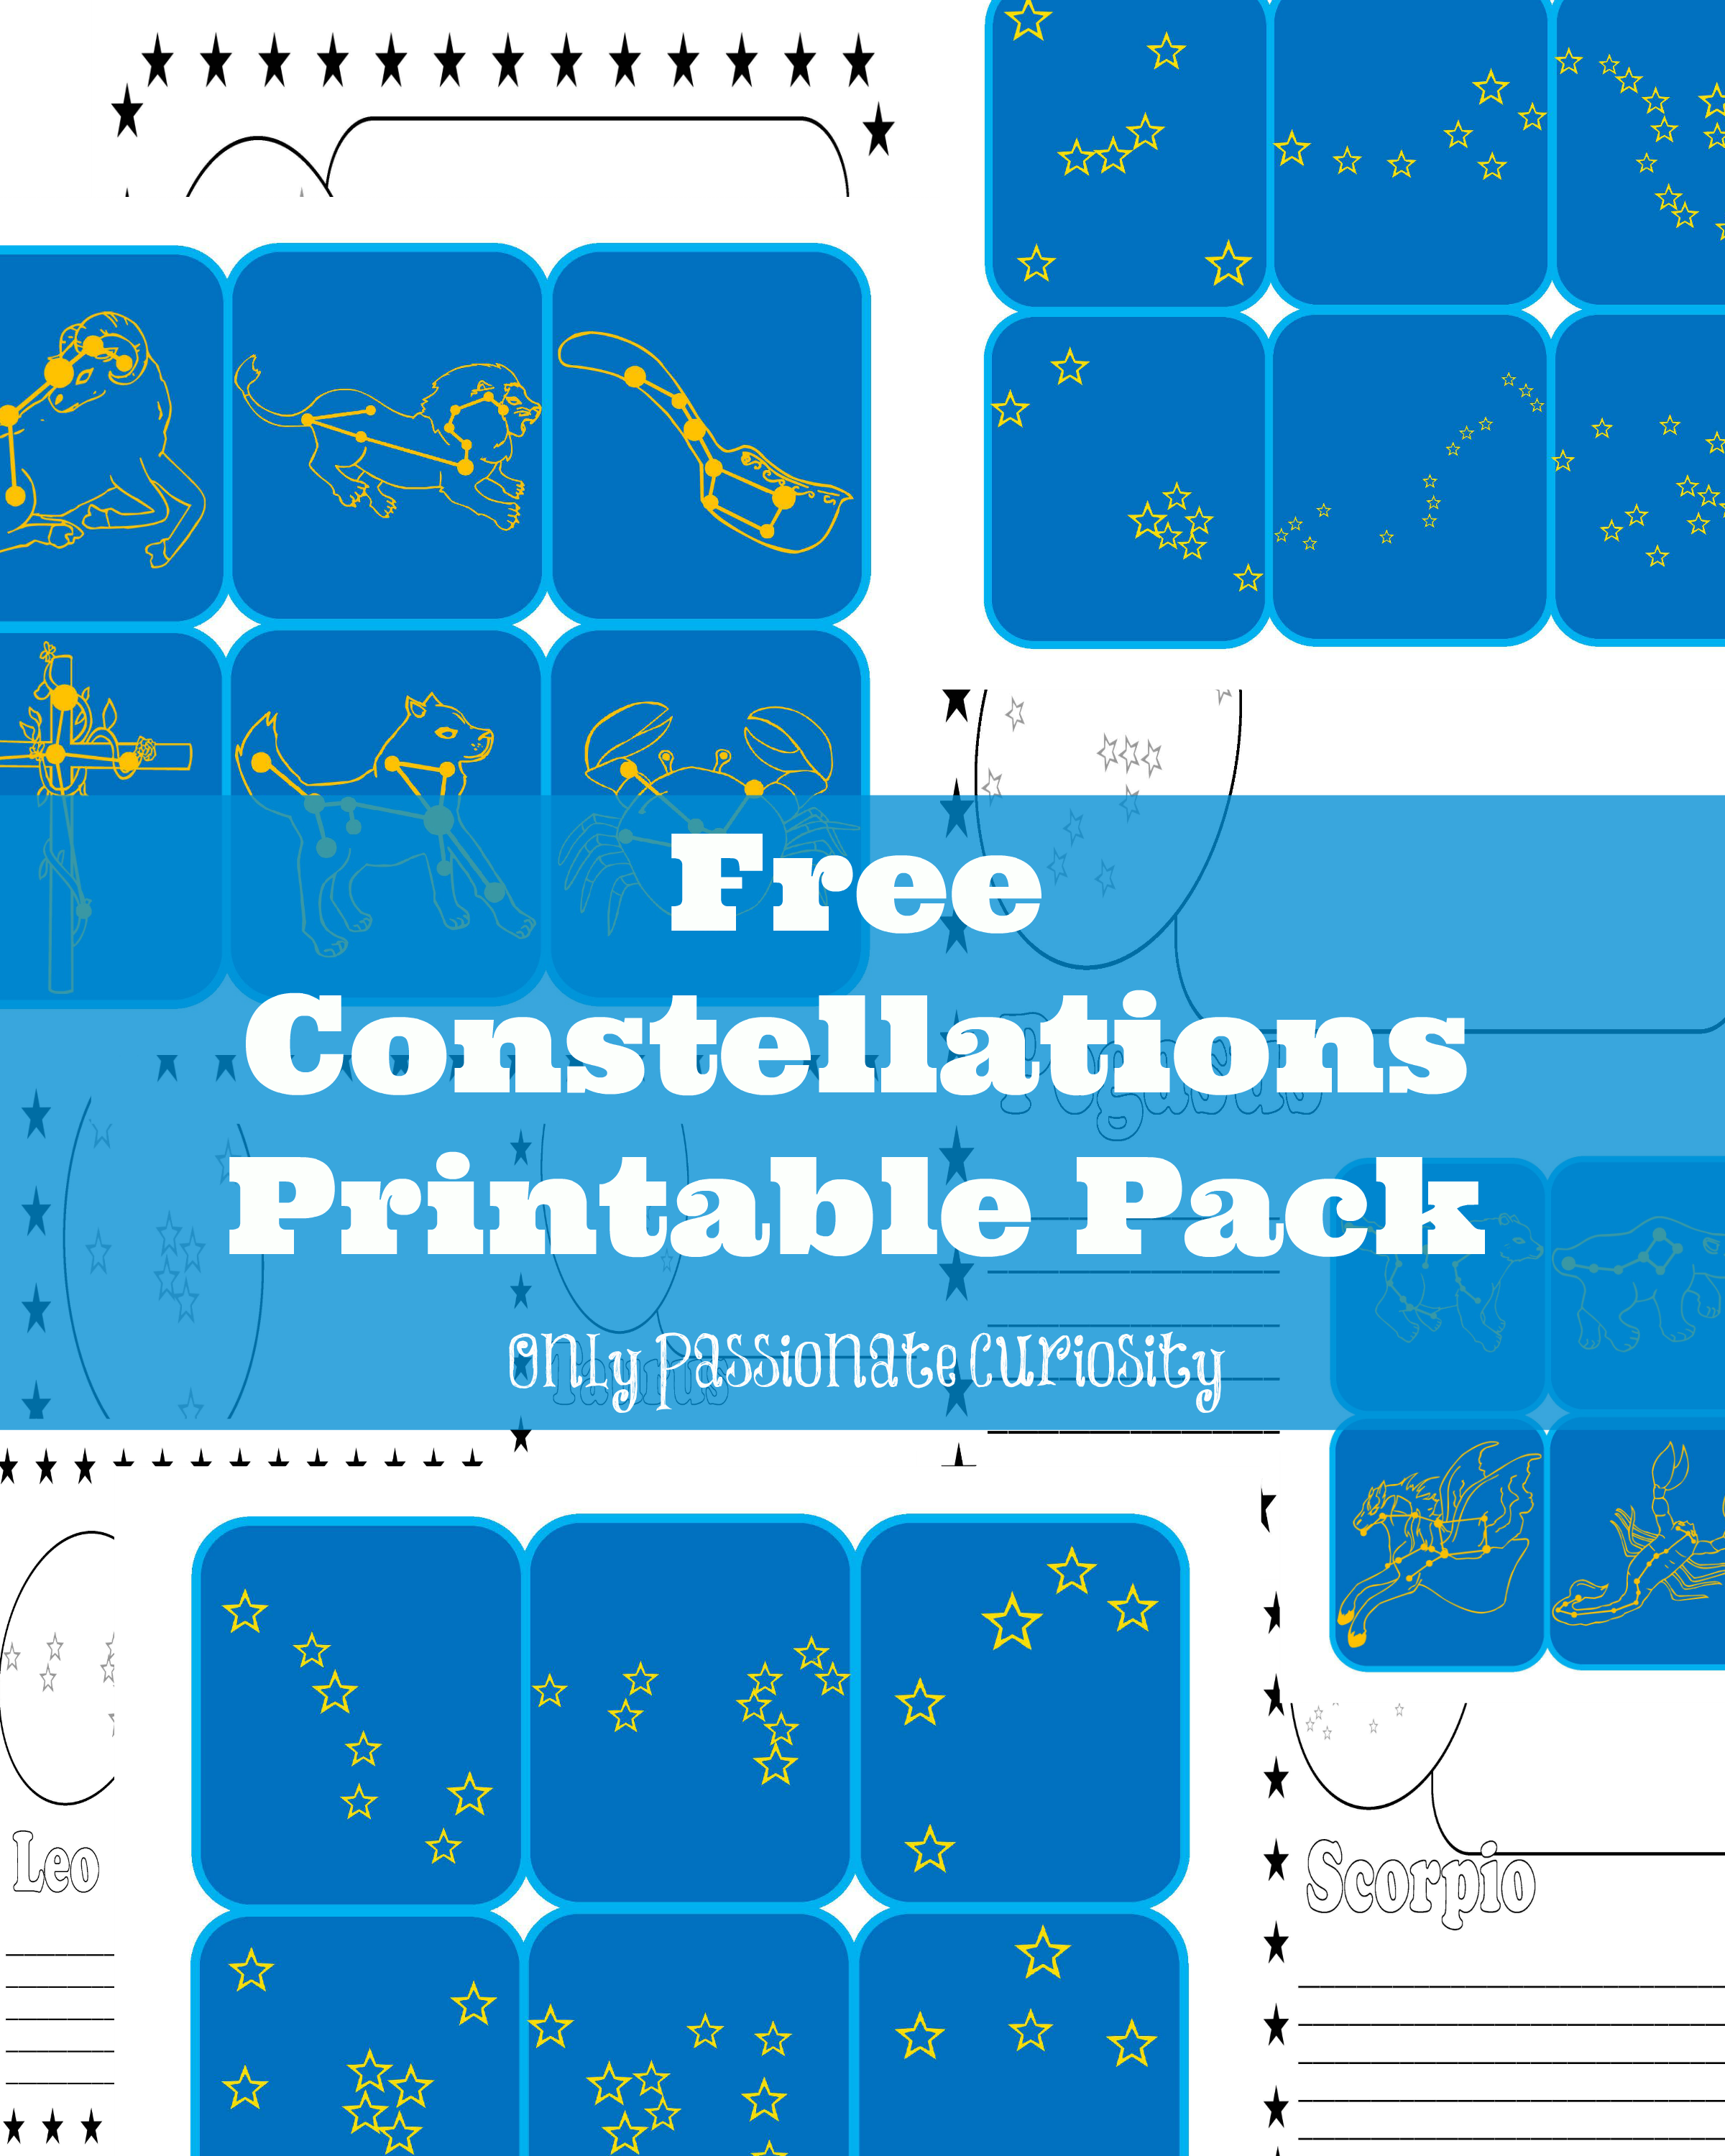 Constellations printable pack only passionate curiosity constellations printable pack publicscrutiny Image collections